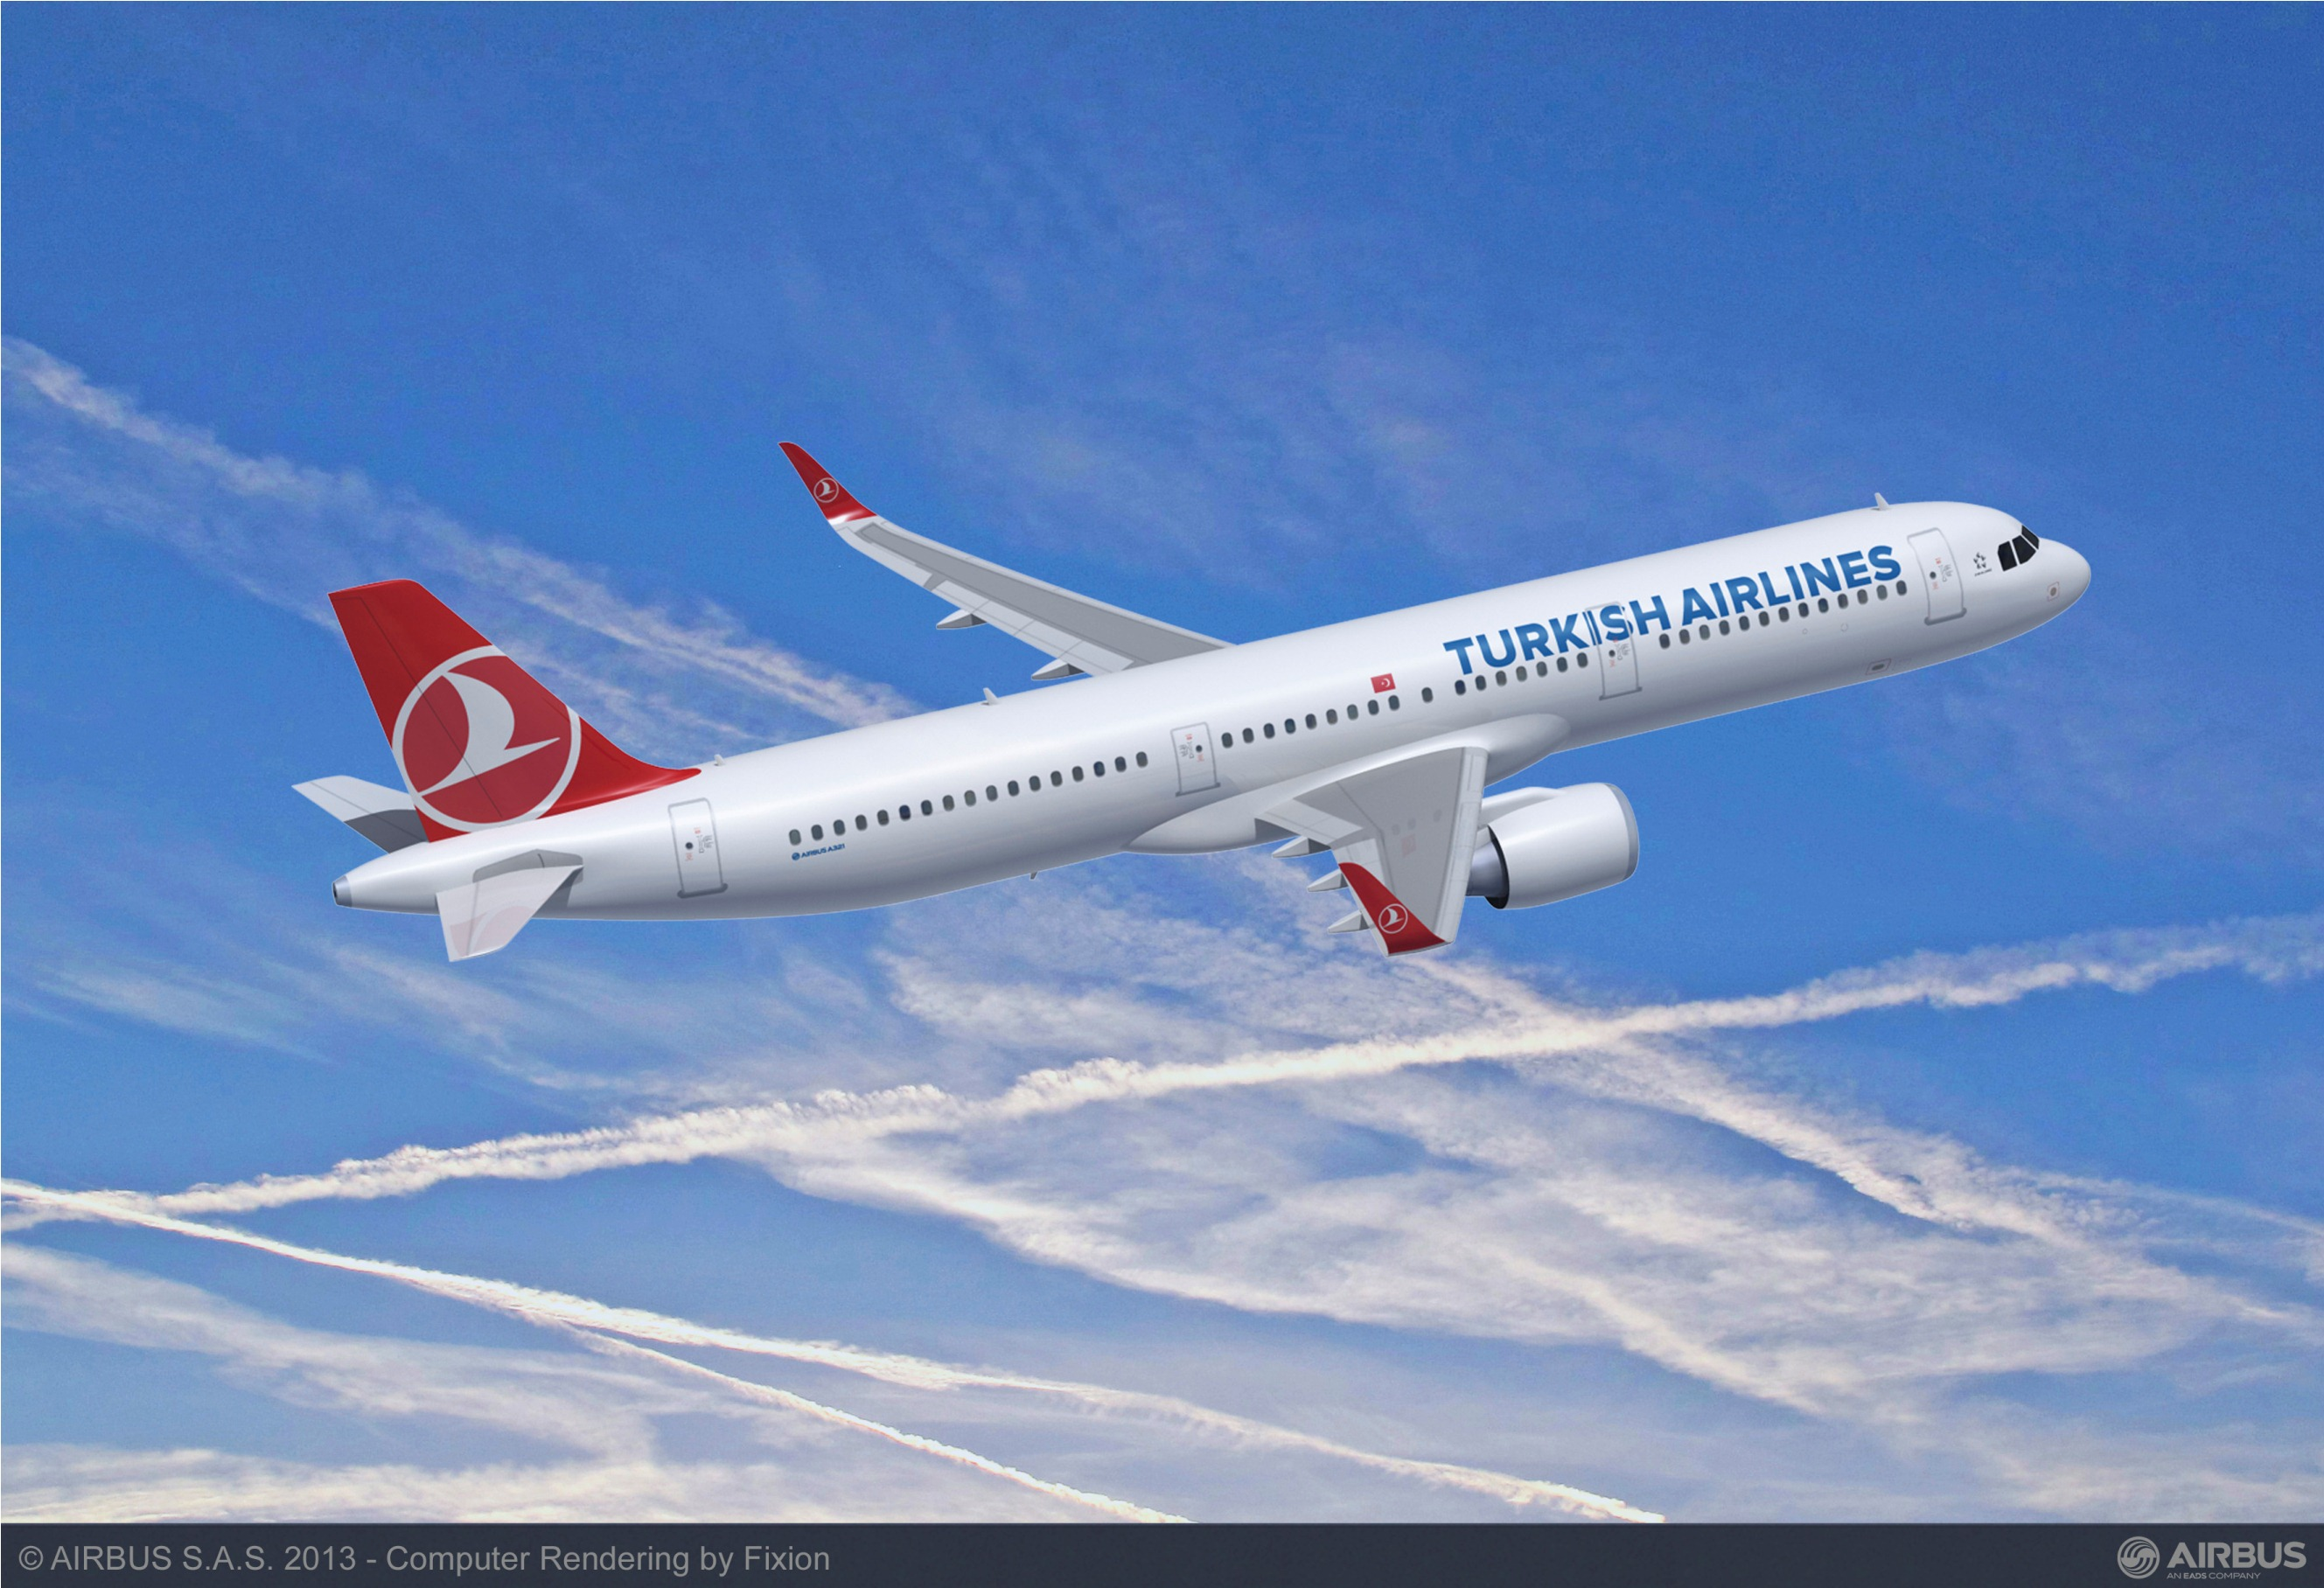 THY_turkish airlines_A321neo_PW